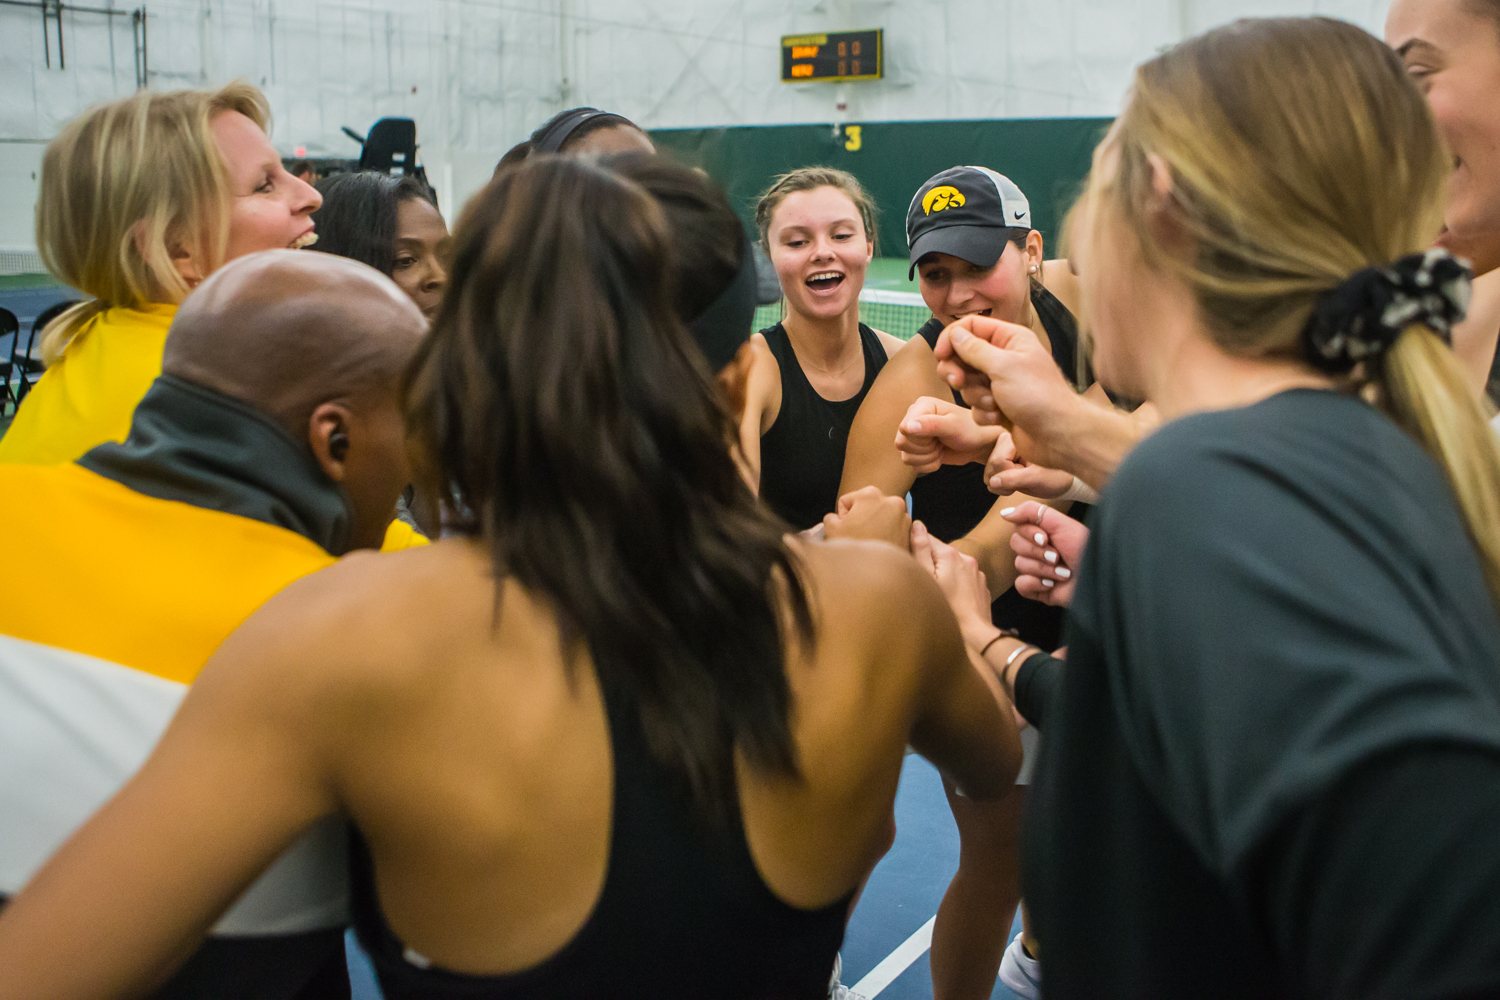 Iowa+players+huddle+before+a+women%27s+tennis+match+between+Iowa+and+Nebraska+at+the+HTRC+on+Saturday%2C+April+13%2C+2019.+The+Hawkeyes%2C+celebrating+senior+day%2C+fell+to+the+Cornhuskers%2C+4-2.